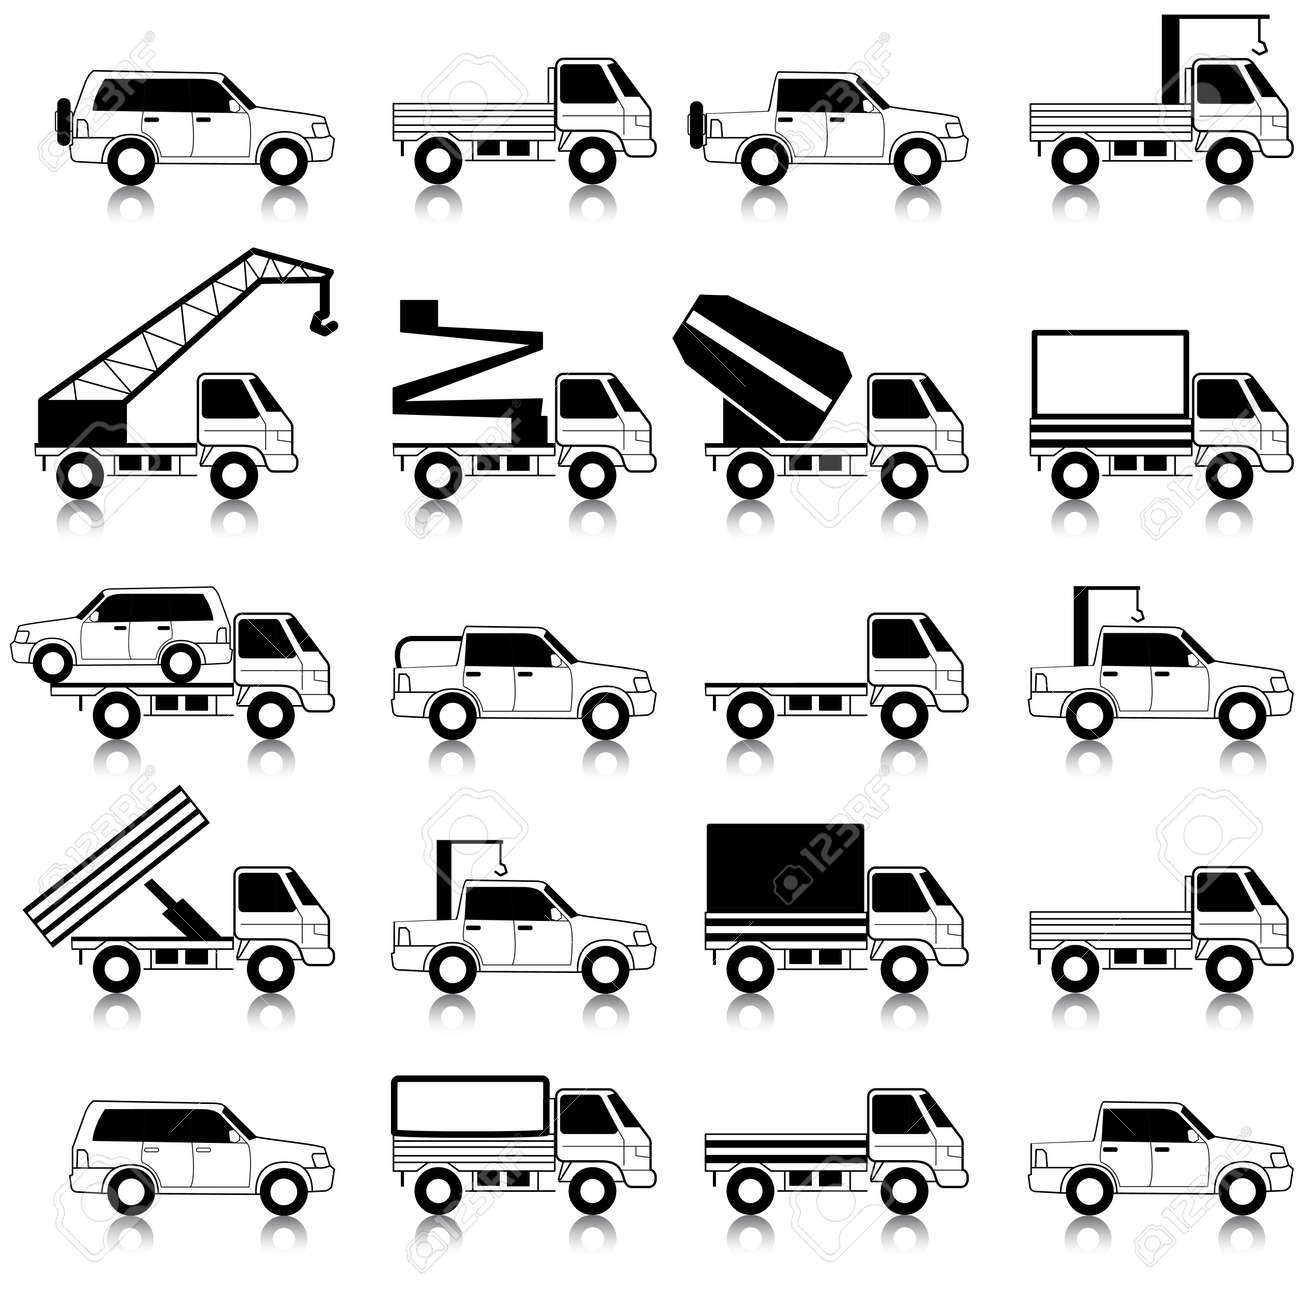 Cars Vehicles Car Body Special Cars Technique Royalty Free Cliparts Vectors And Stock Illustration Image 12919344